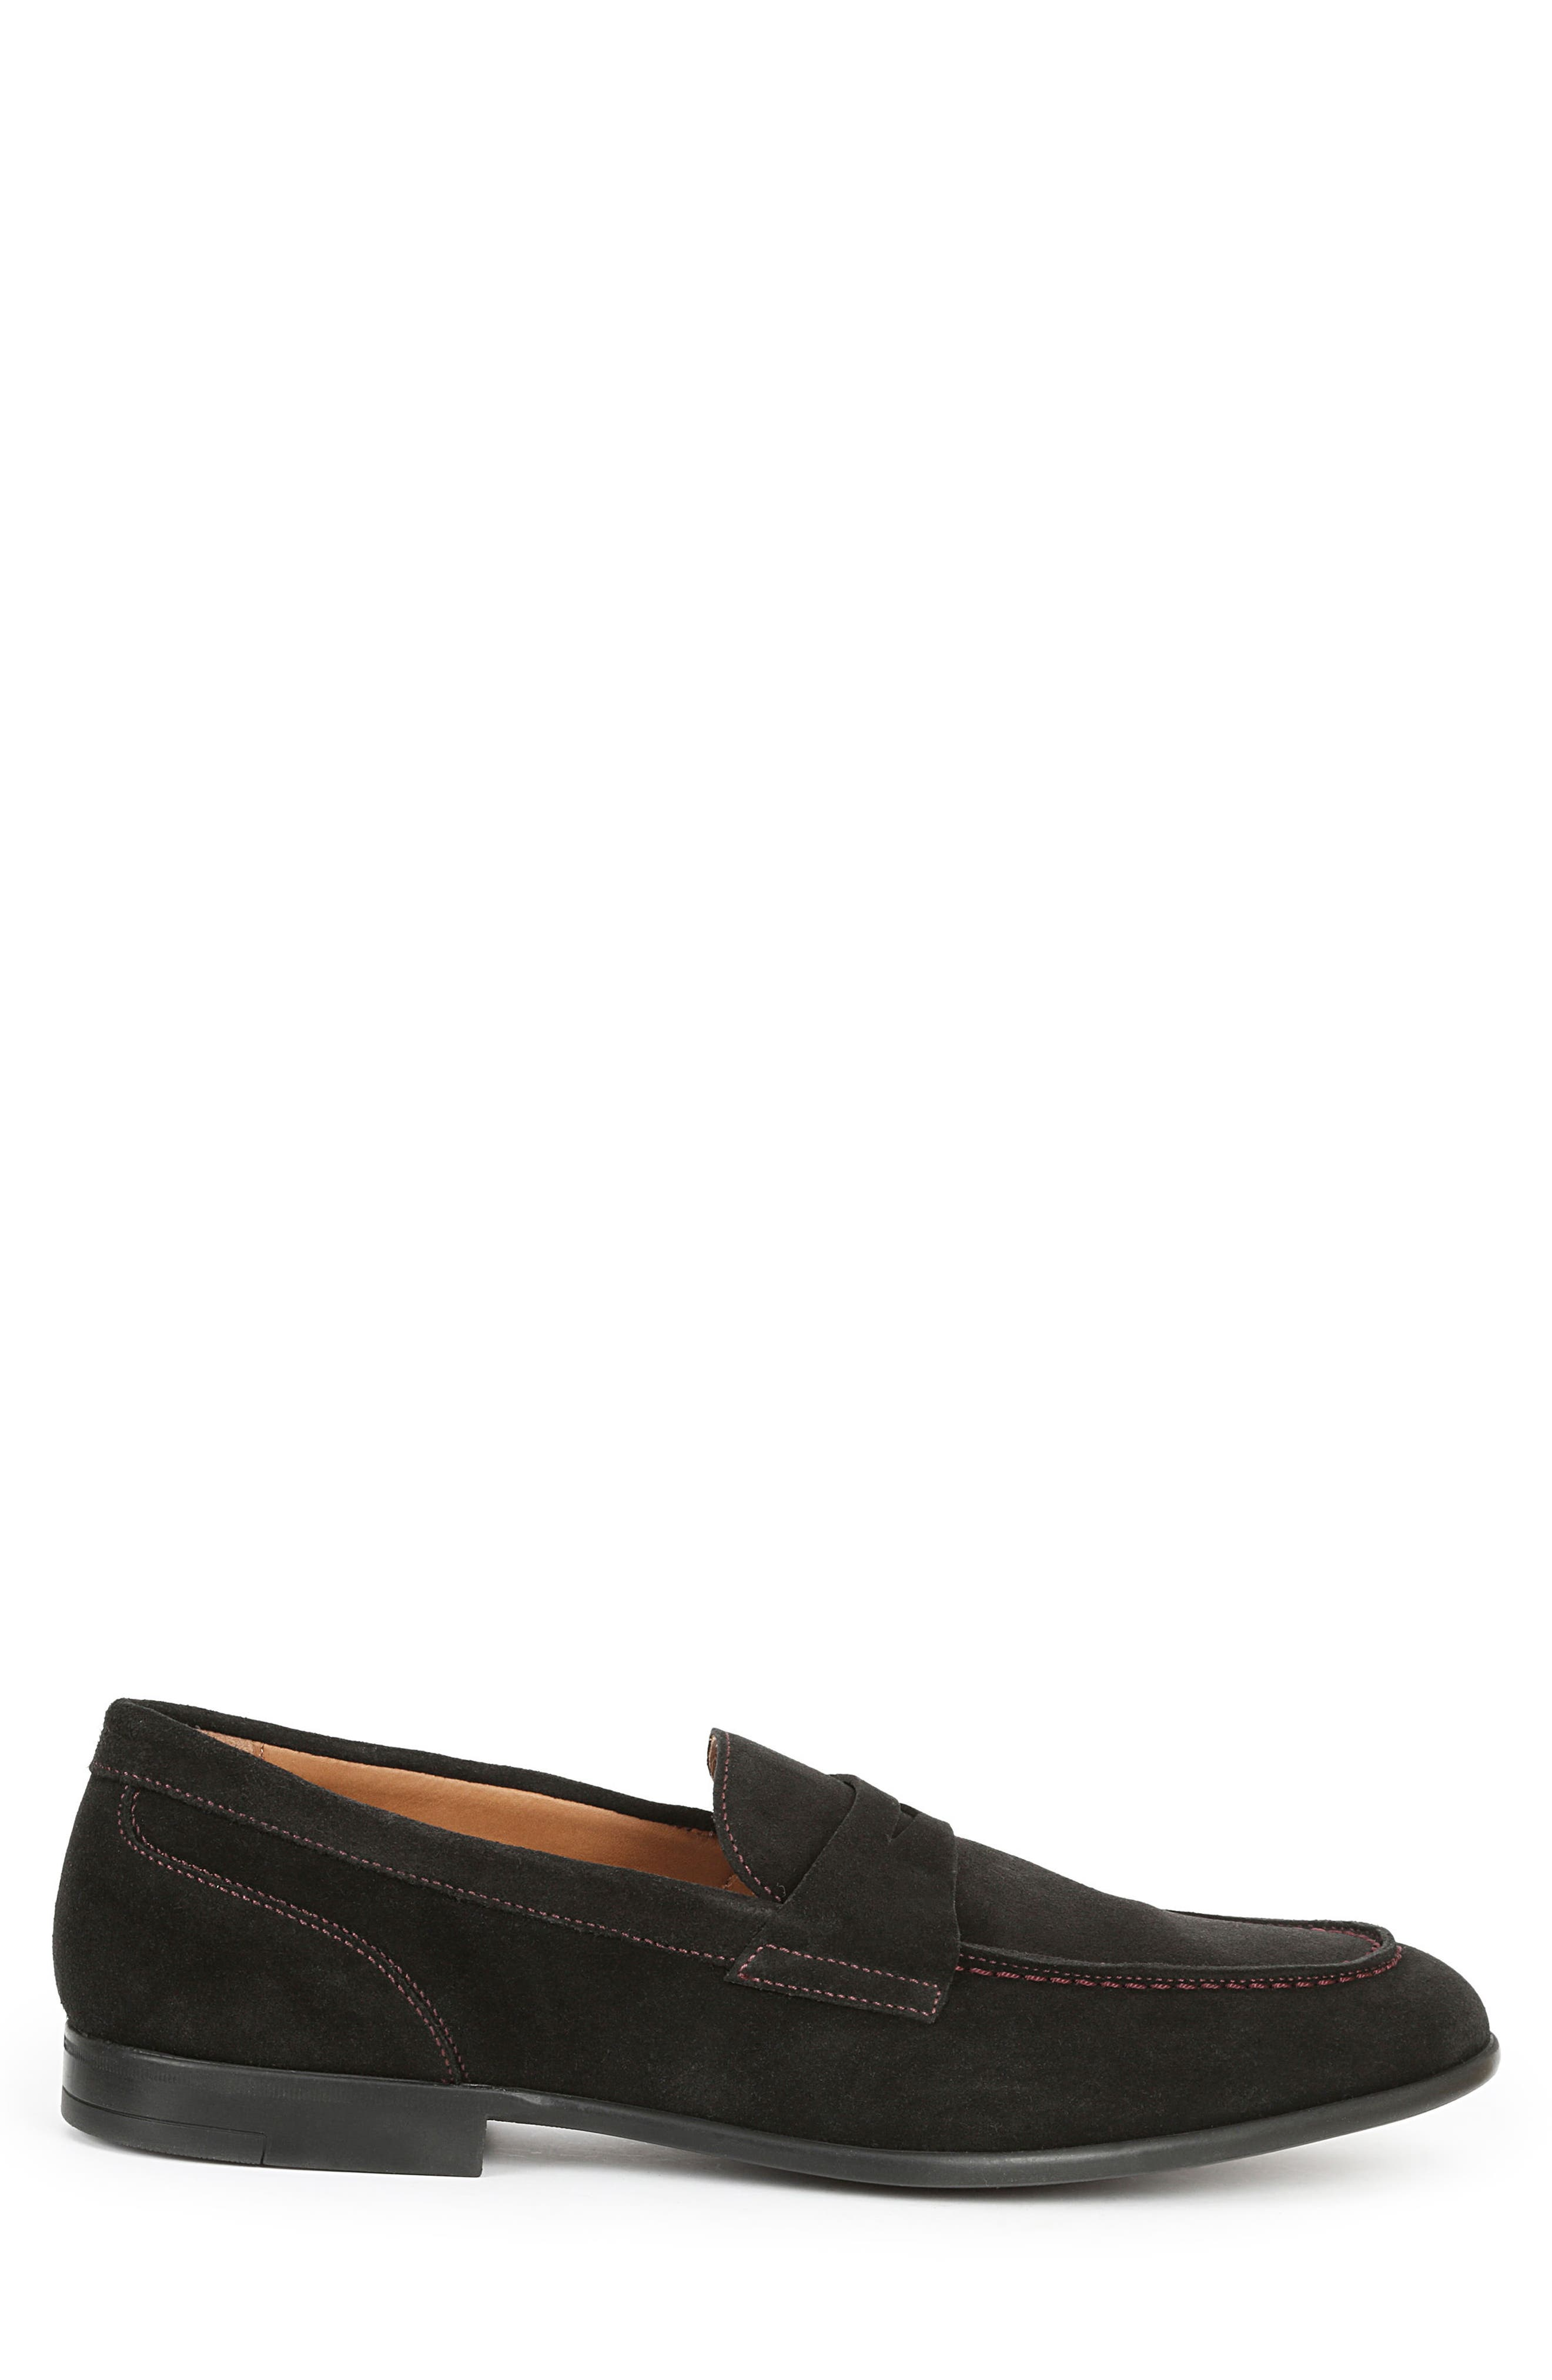 Silas Penny Loafer,                             Alternate thumbnail 3, color,                             BLACK